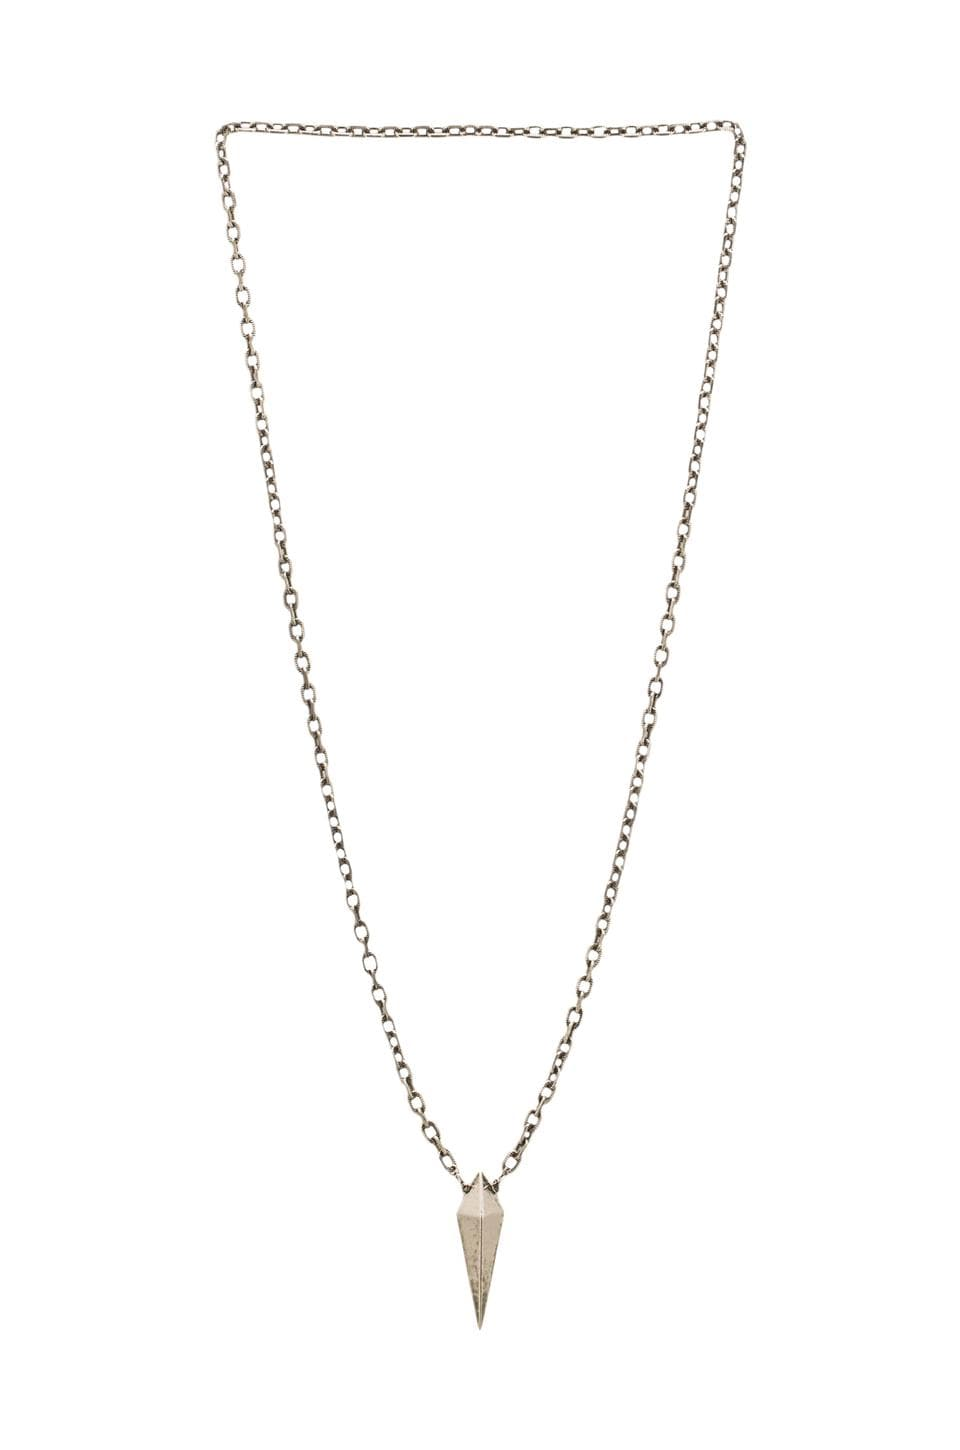 Luv AJ The Long Spike Charm Necklace in Antique Nickel